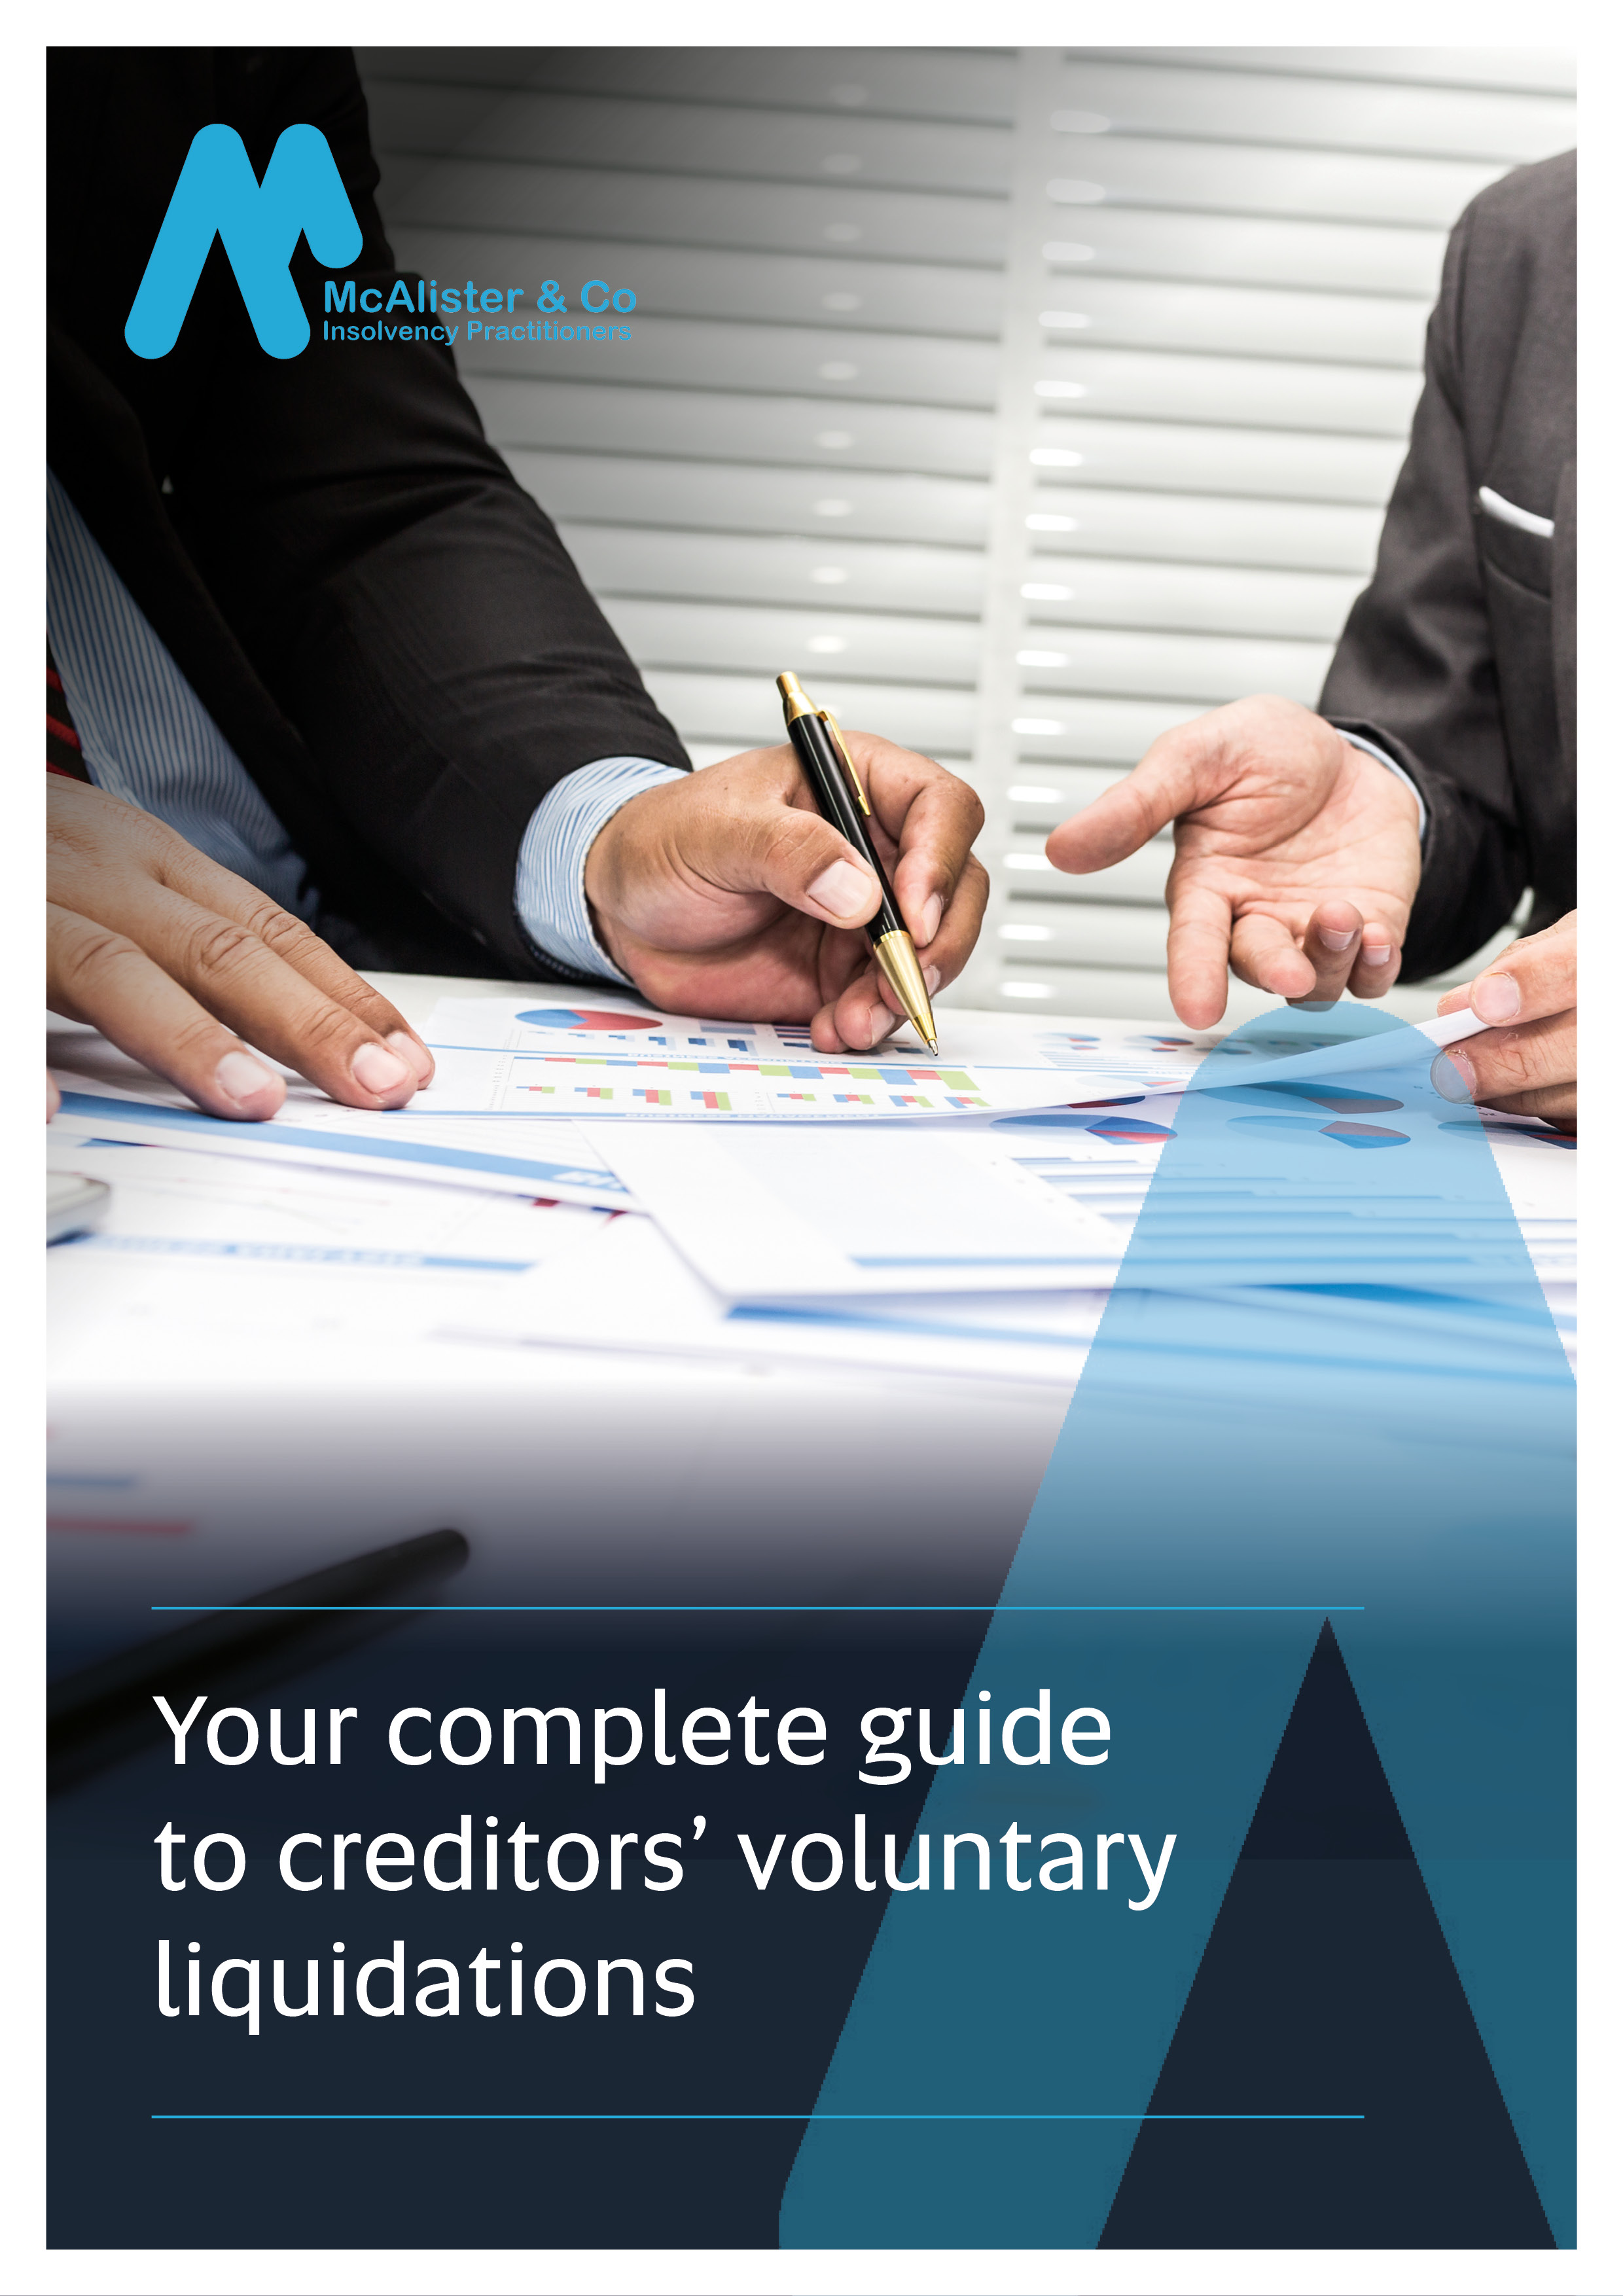 McAlister_Your complete guide to creditors' voluntary liquidations